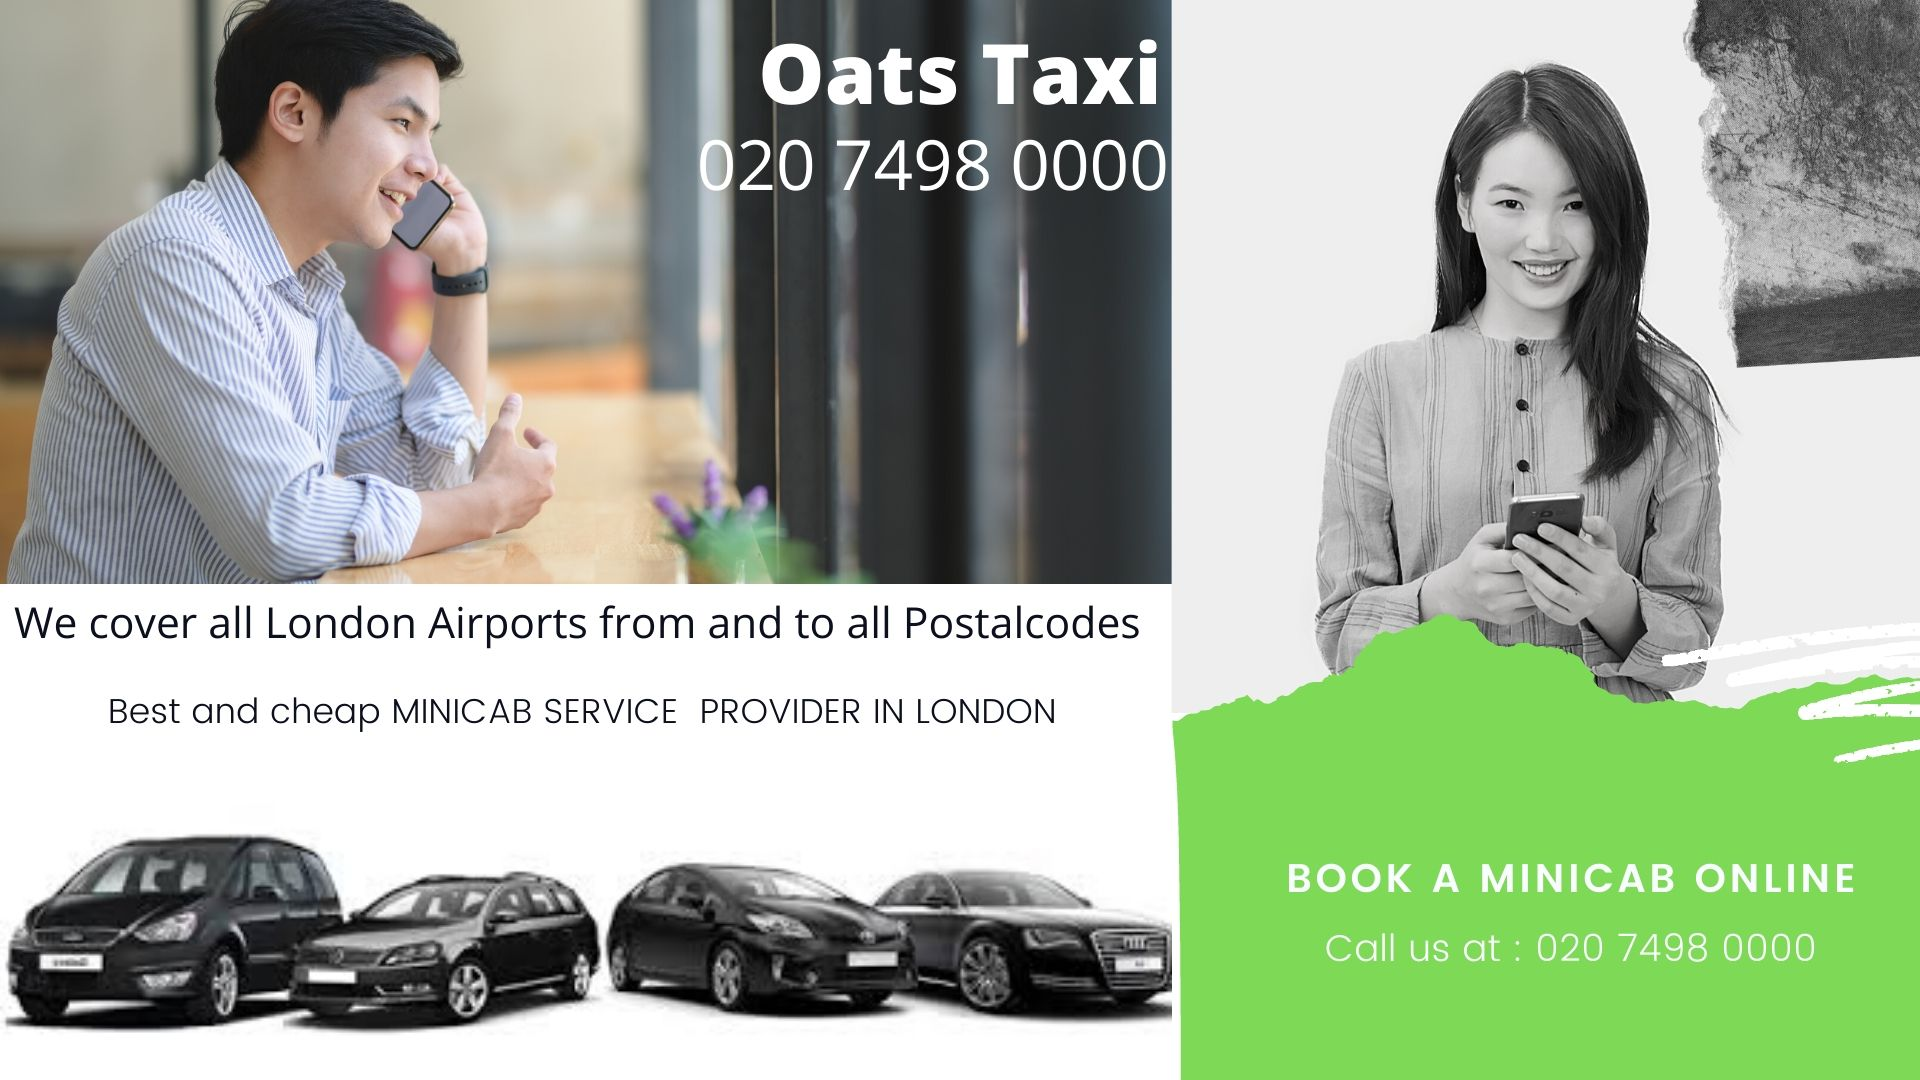 Minicab Office Near THE AVENUE, Battersea SW11, Minicab From Battersea SW11 To Gatwick Airport